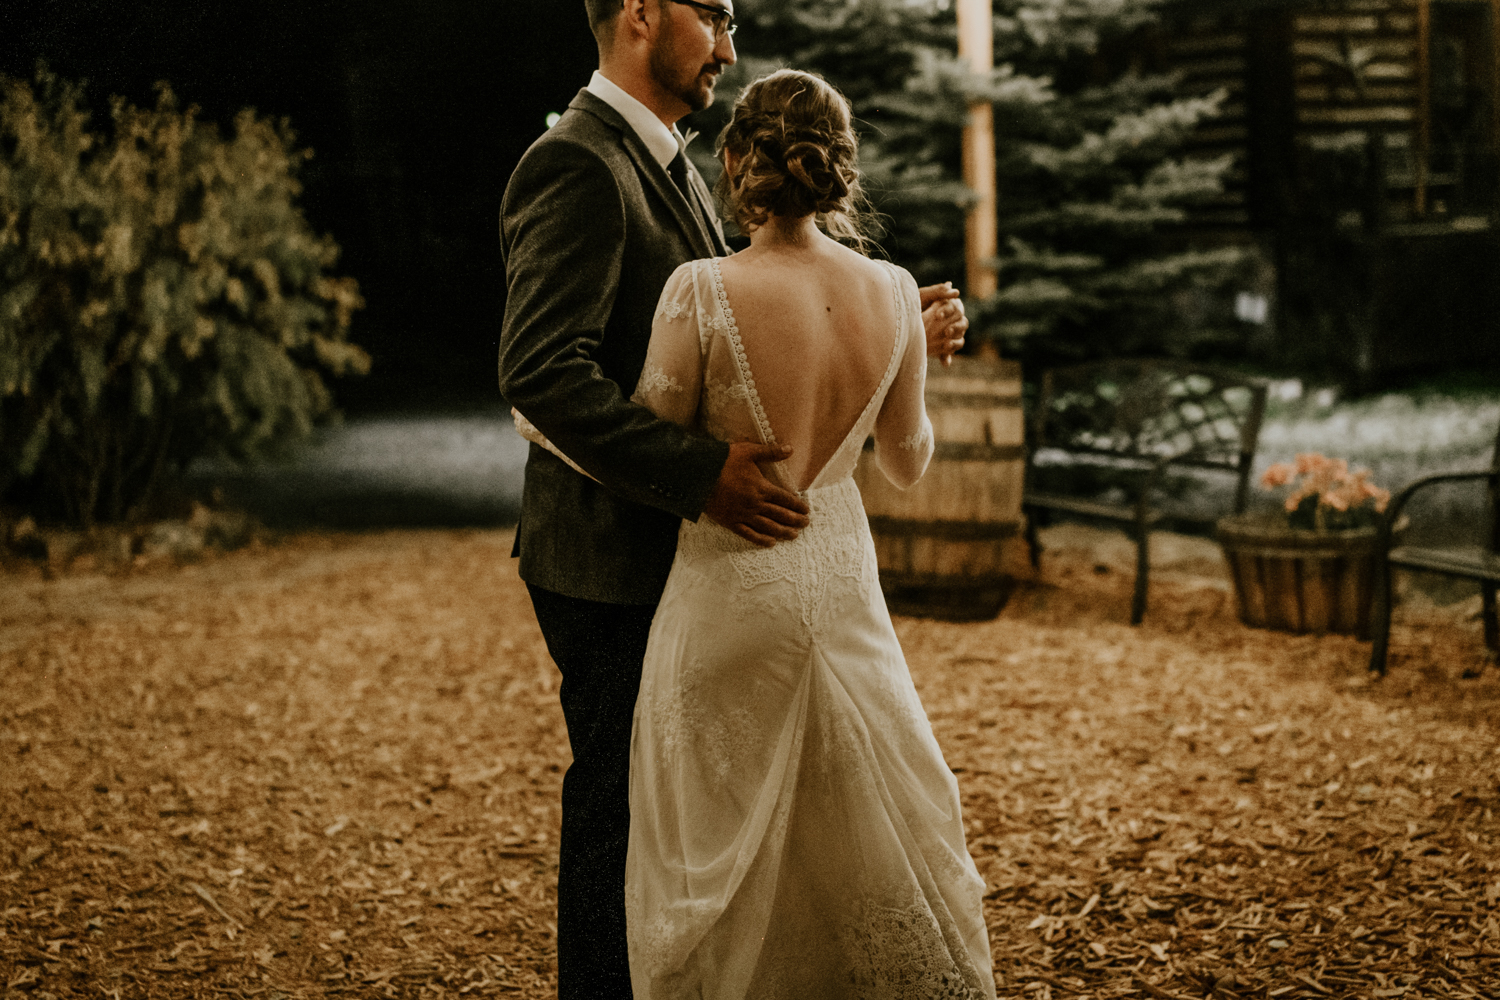 Intimate Mountain Wedding Romantic First Dance Photos, Meadow Creek, Pine Colorado